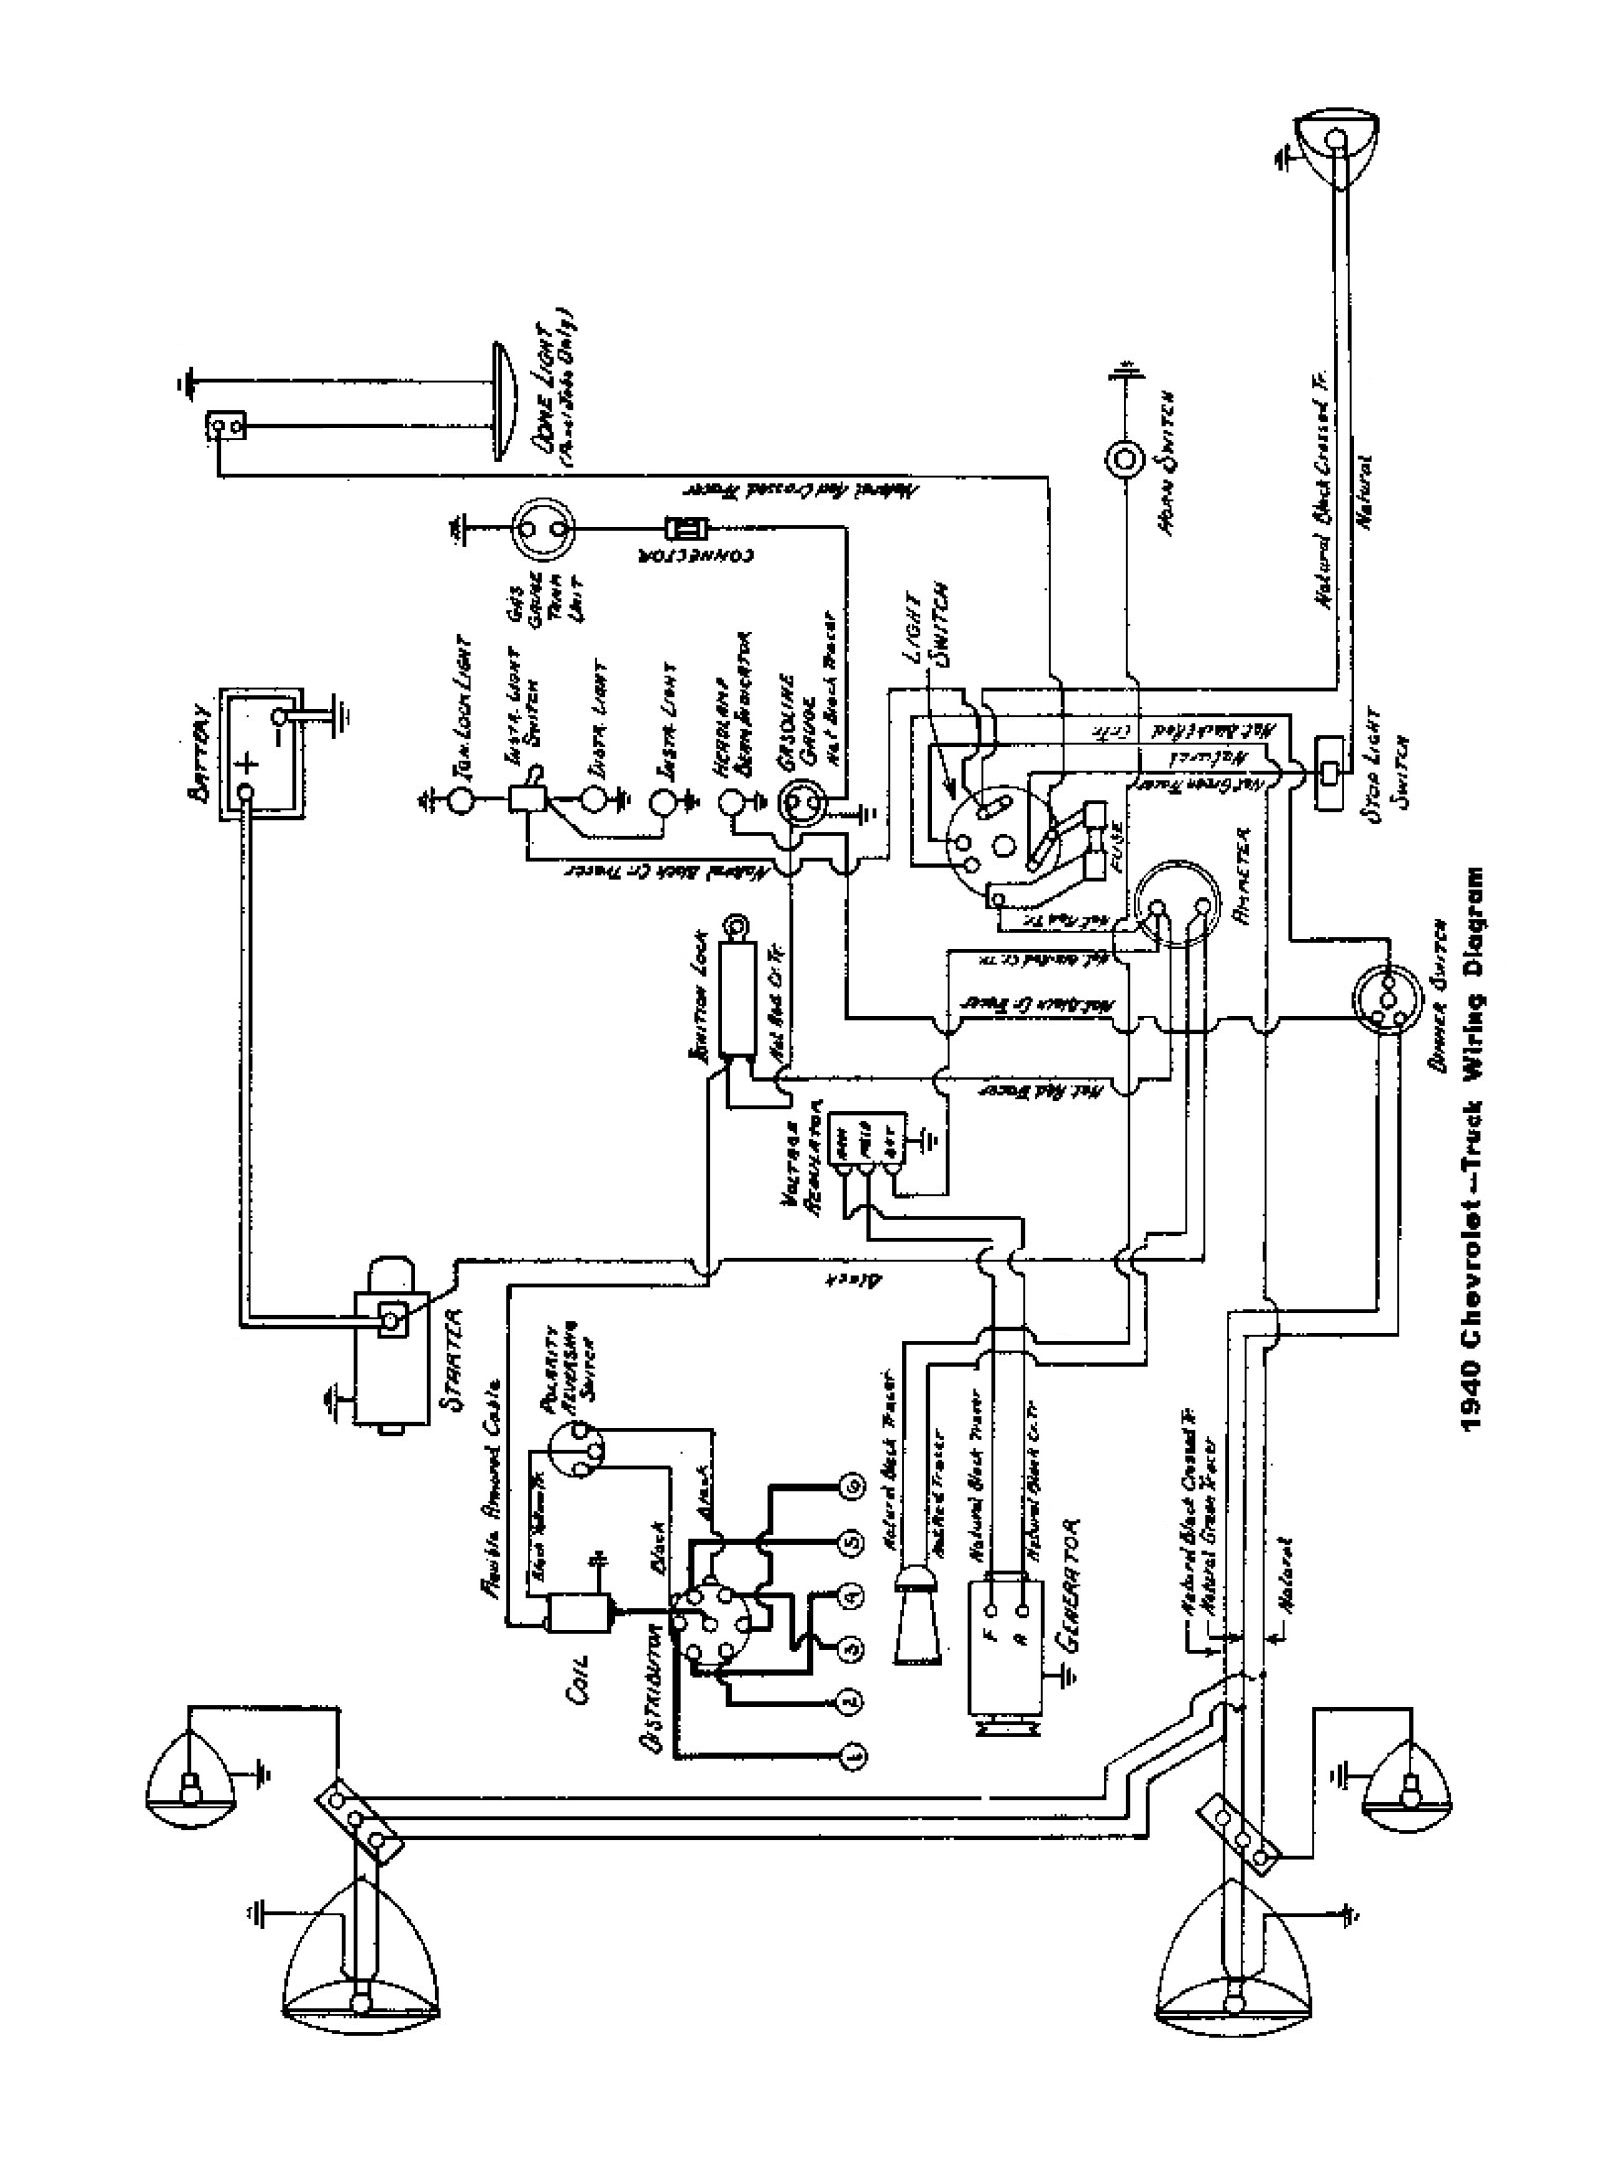 40truck chevy wiring diagrams chevrolet wiring diagram at webbmarketing.co